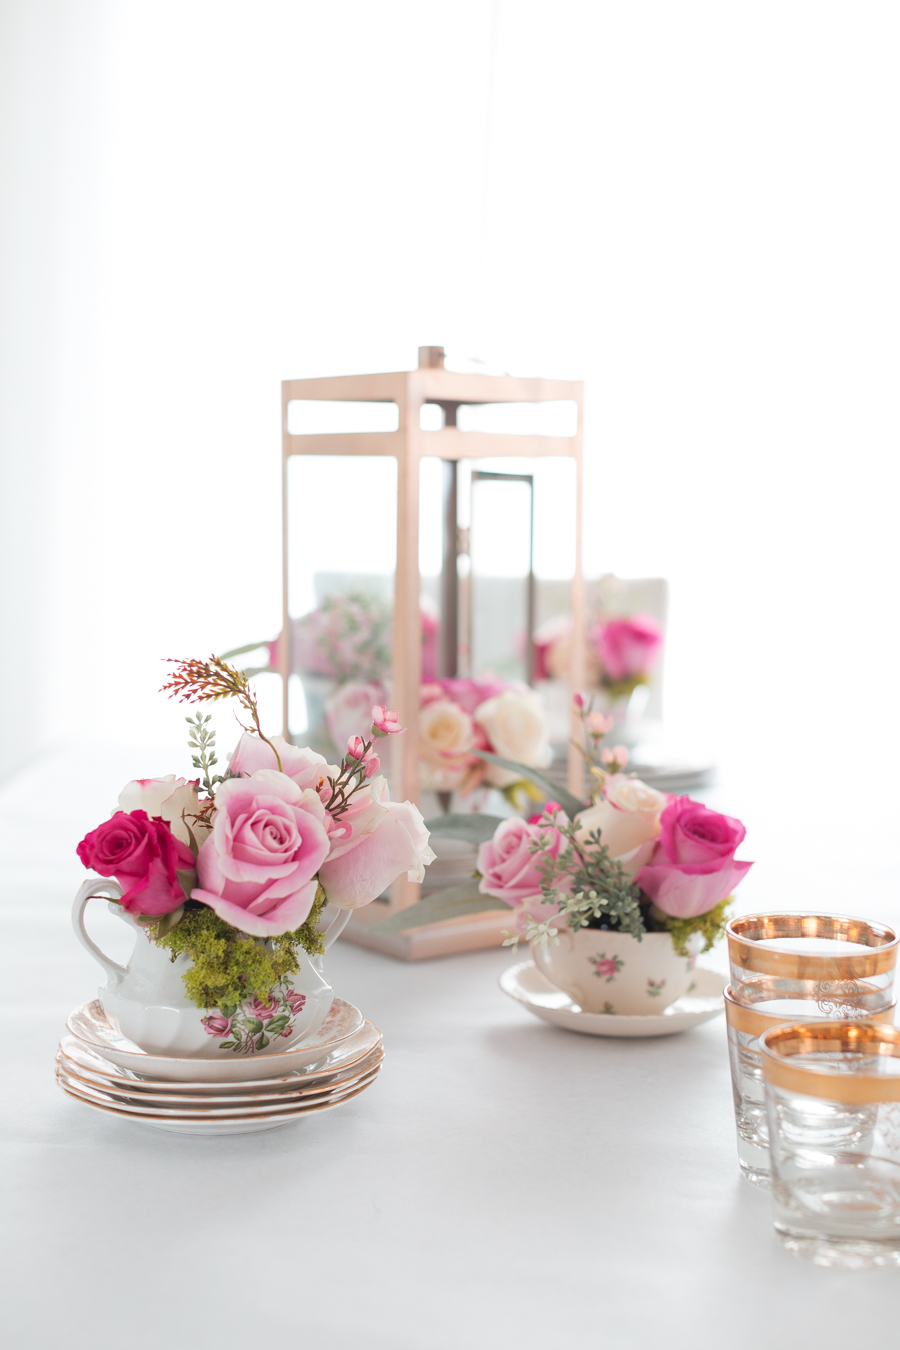 teacup pink flower arrangement